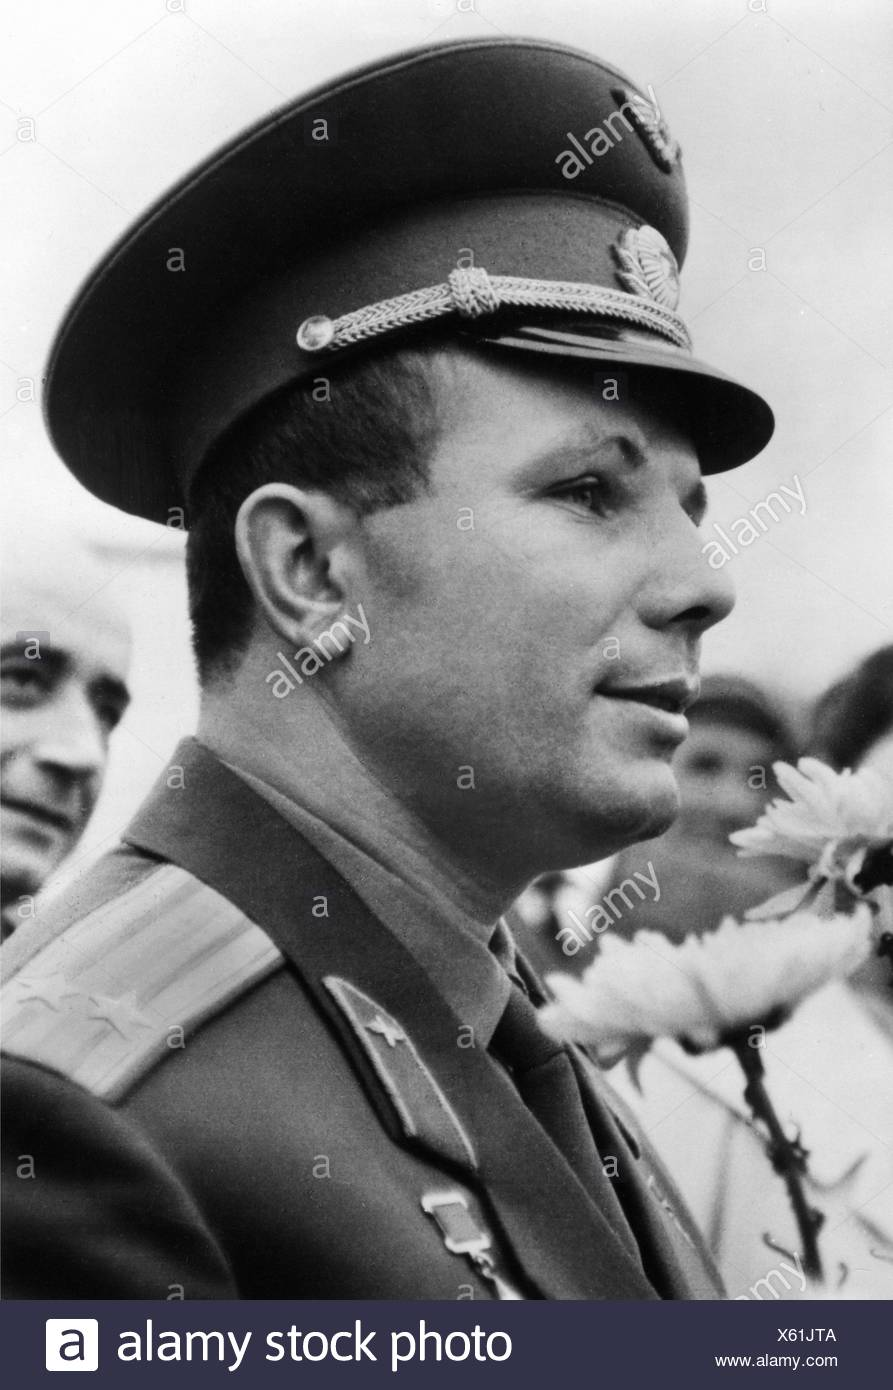 Gagarin, Yuri, 9.3.1934 - 27.3.1968, Soviet spaceman (cosmonaut), portrait, postcard, East-Germany, 1972, Additional-Rights-Clearances-NA - Stock Image